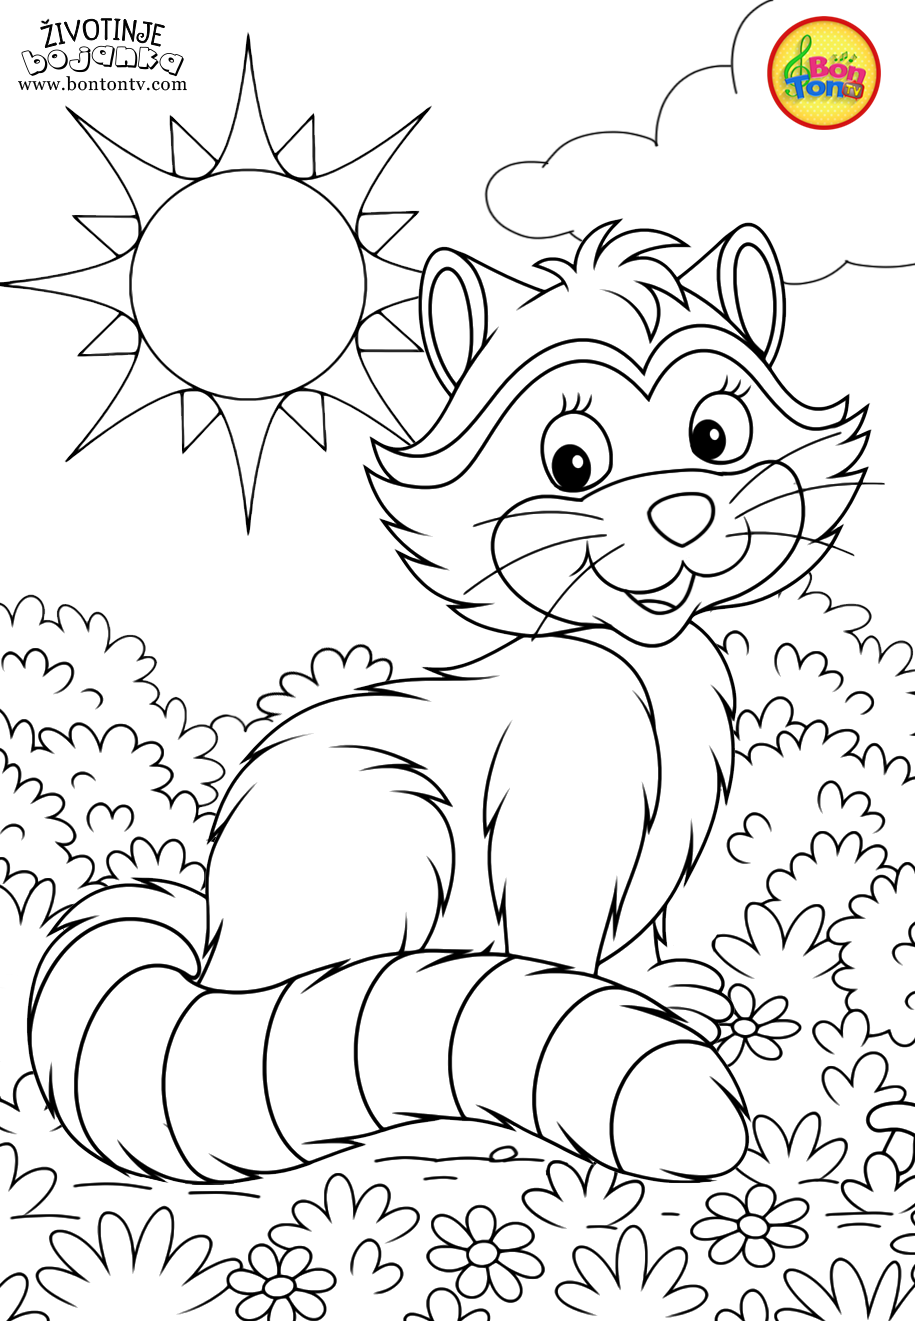 Animals Coloring Pages for Kids - Free Preschool ...